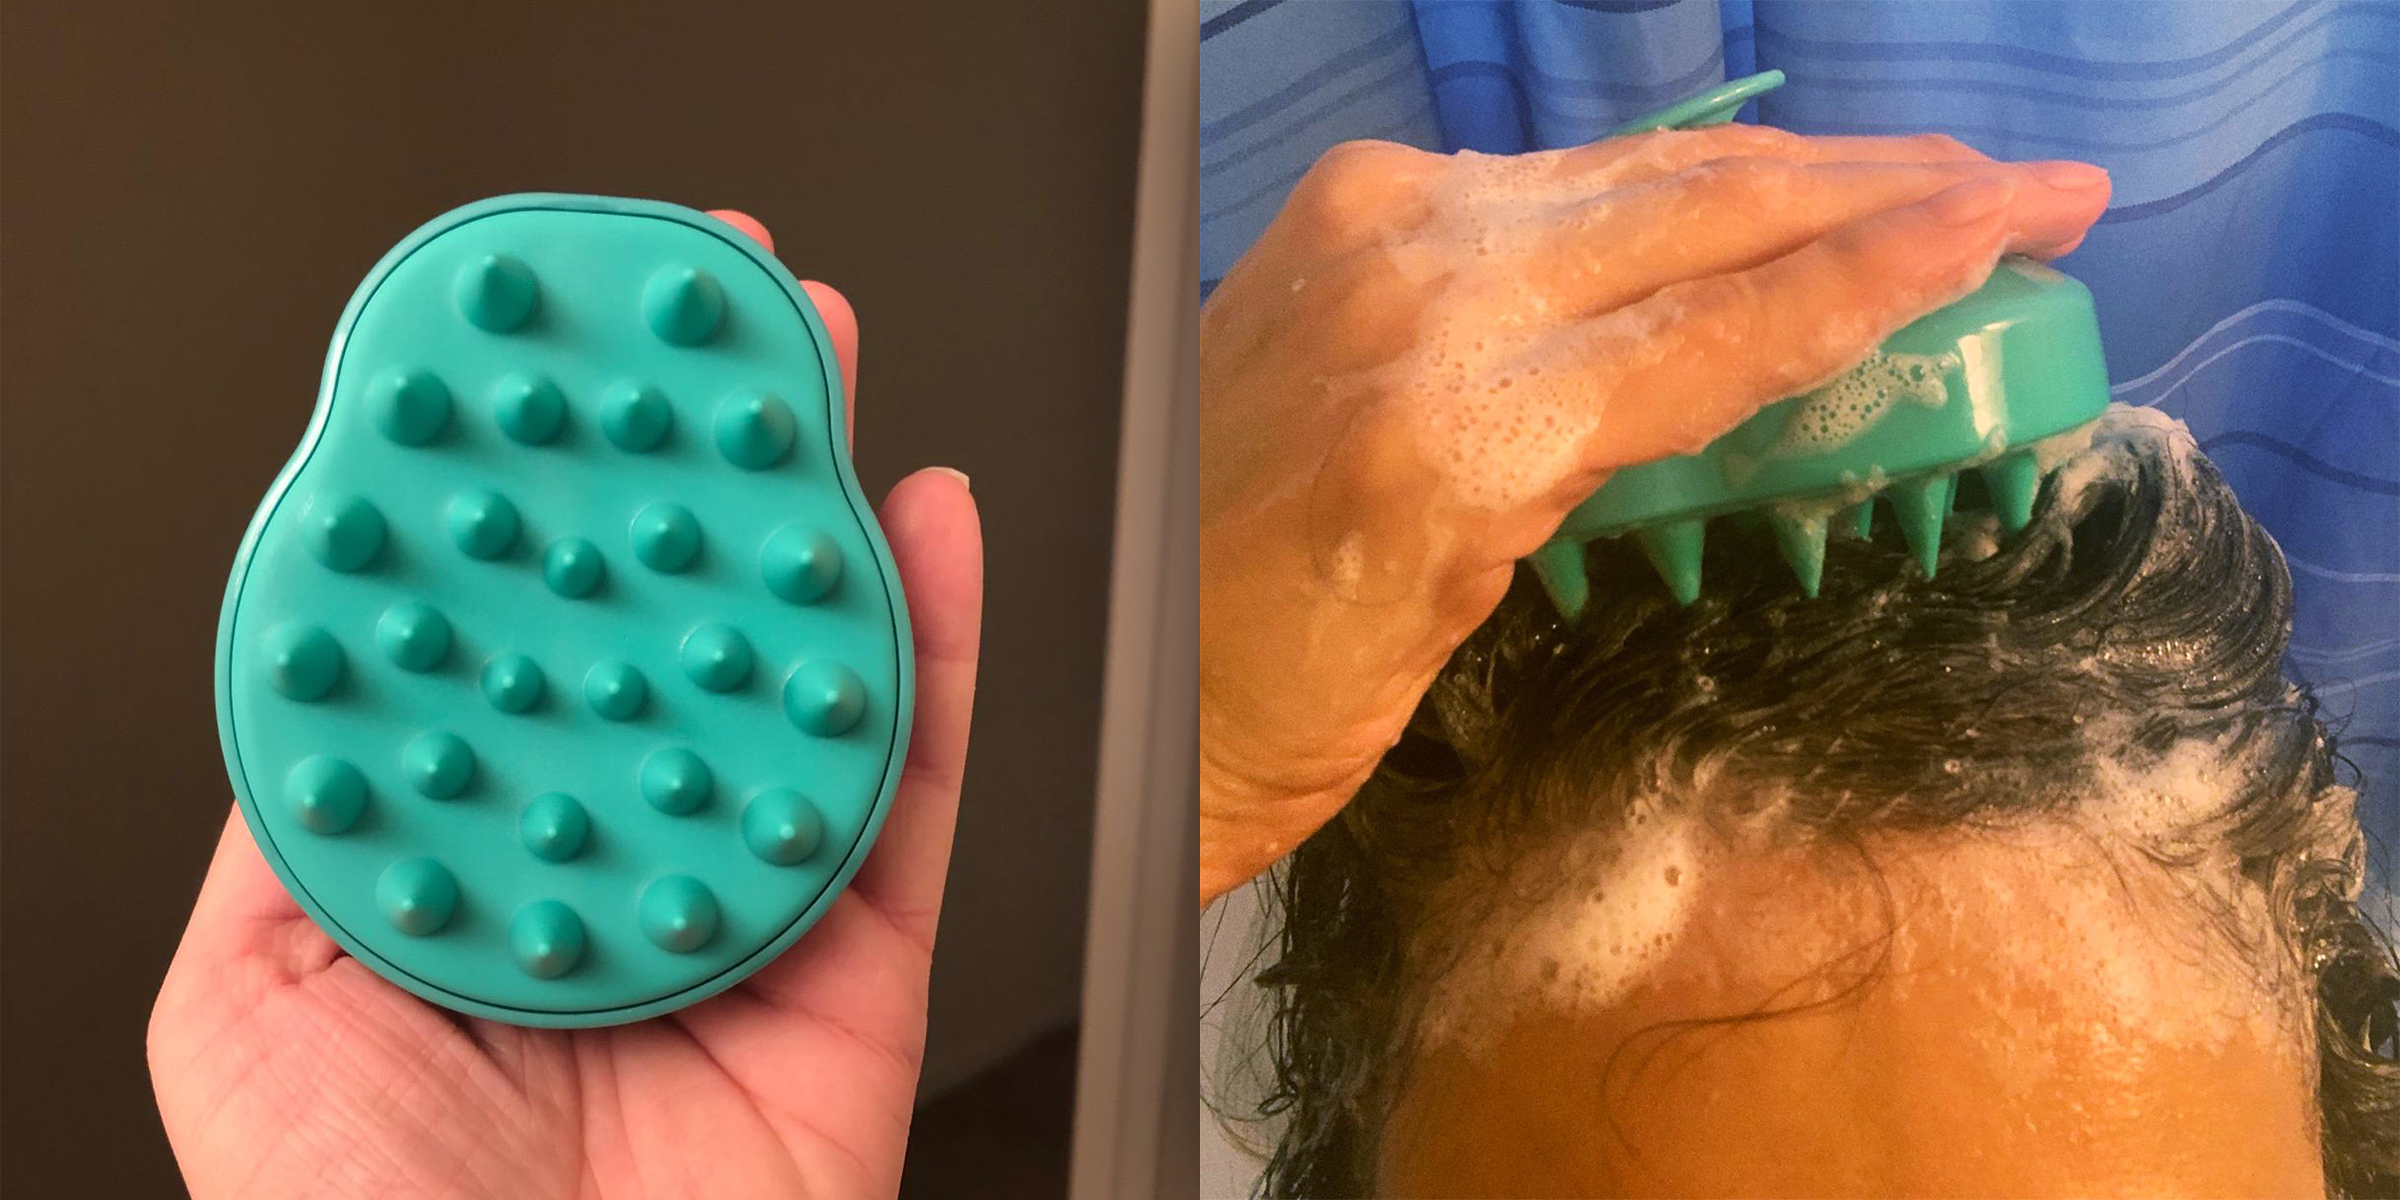 Over 3,000 Amazon shoppers swear by this scalp brush